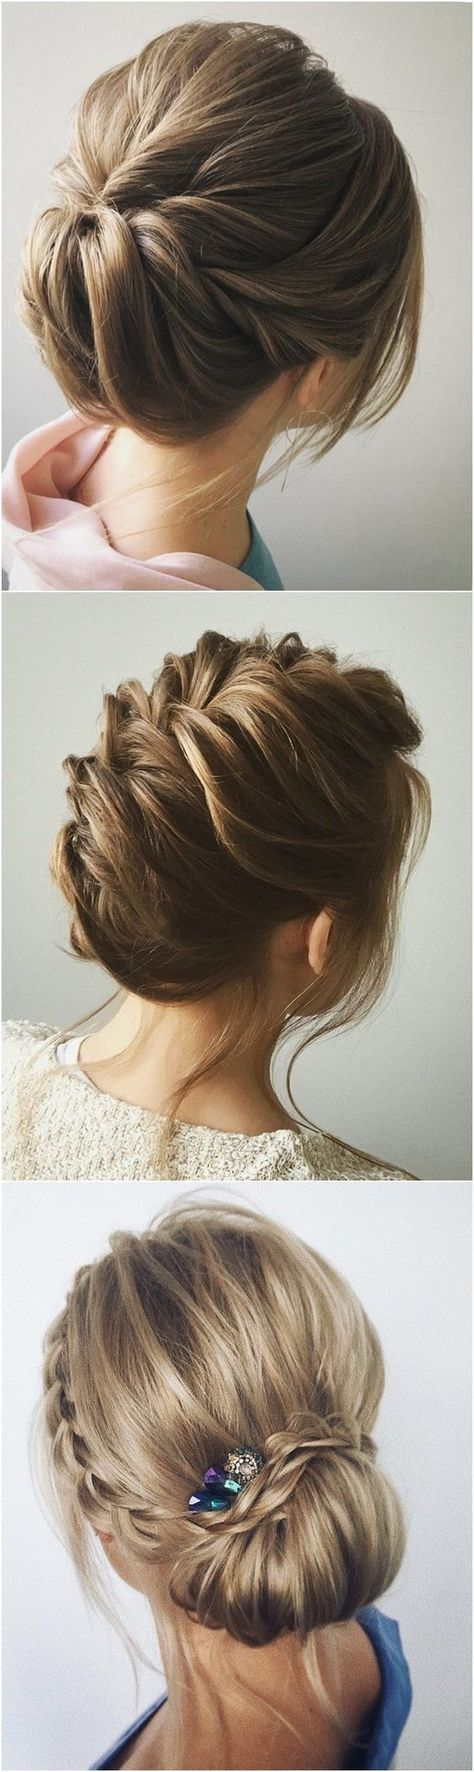 wedding styles for medium hair 12 trending updo wedding hairstyles from instagram page 9638